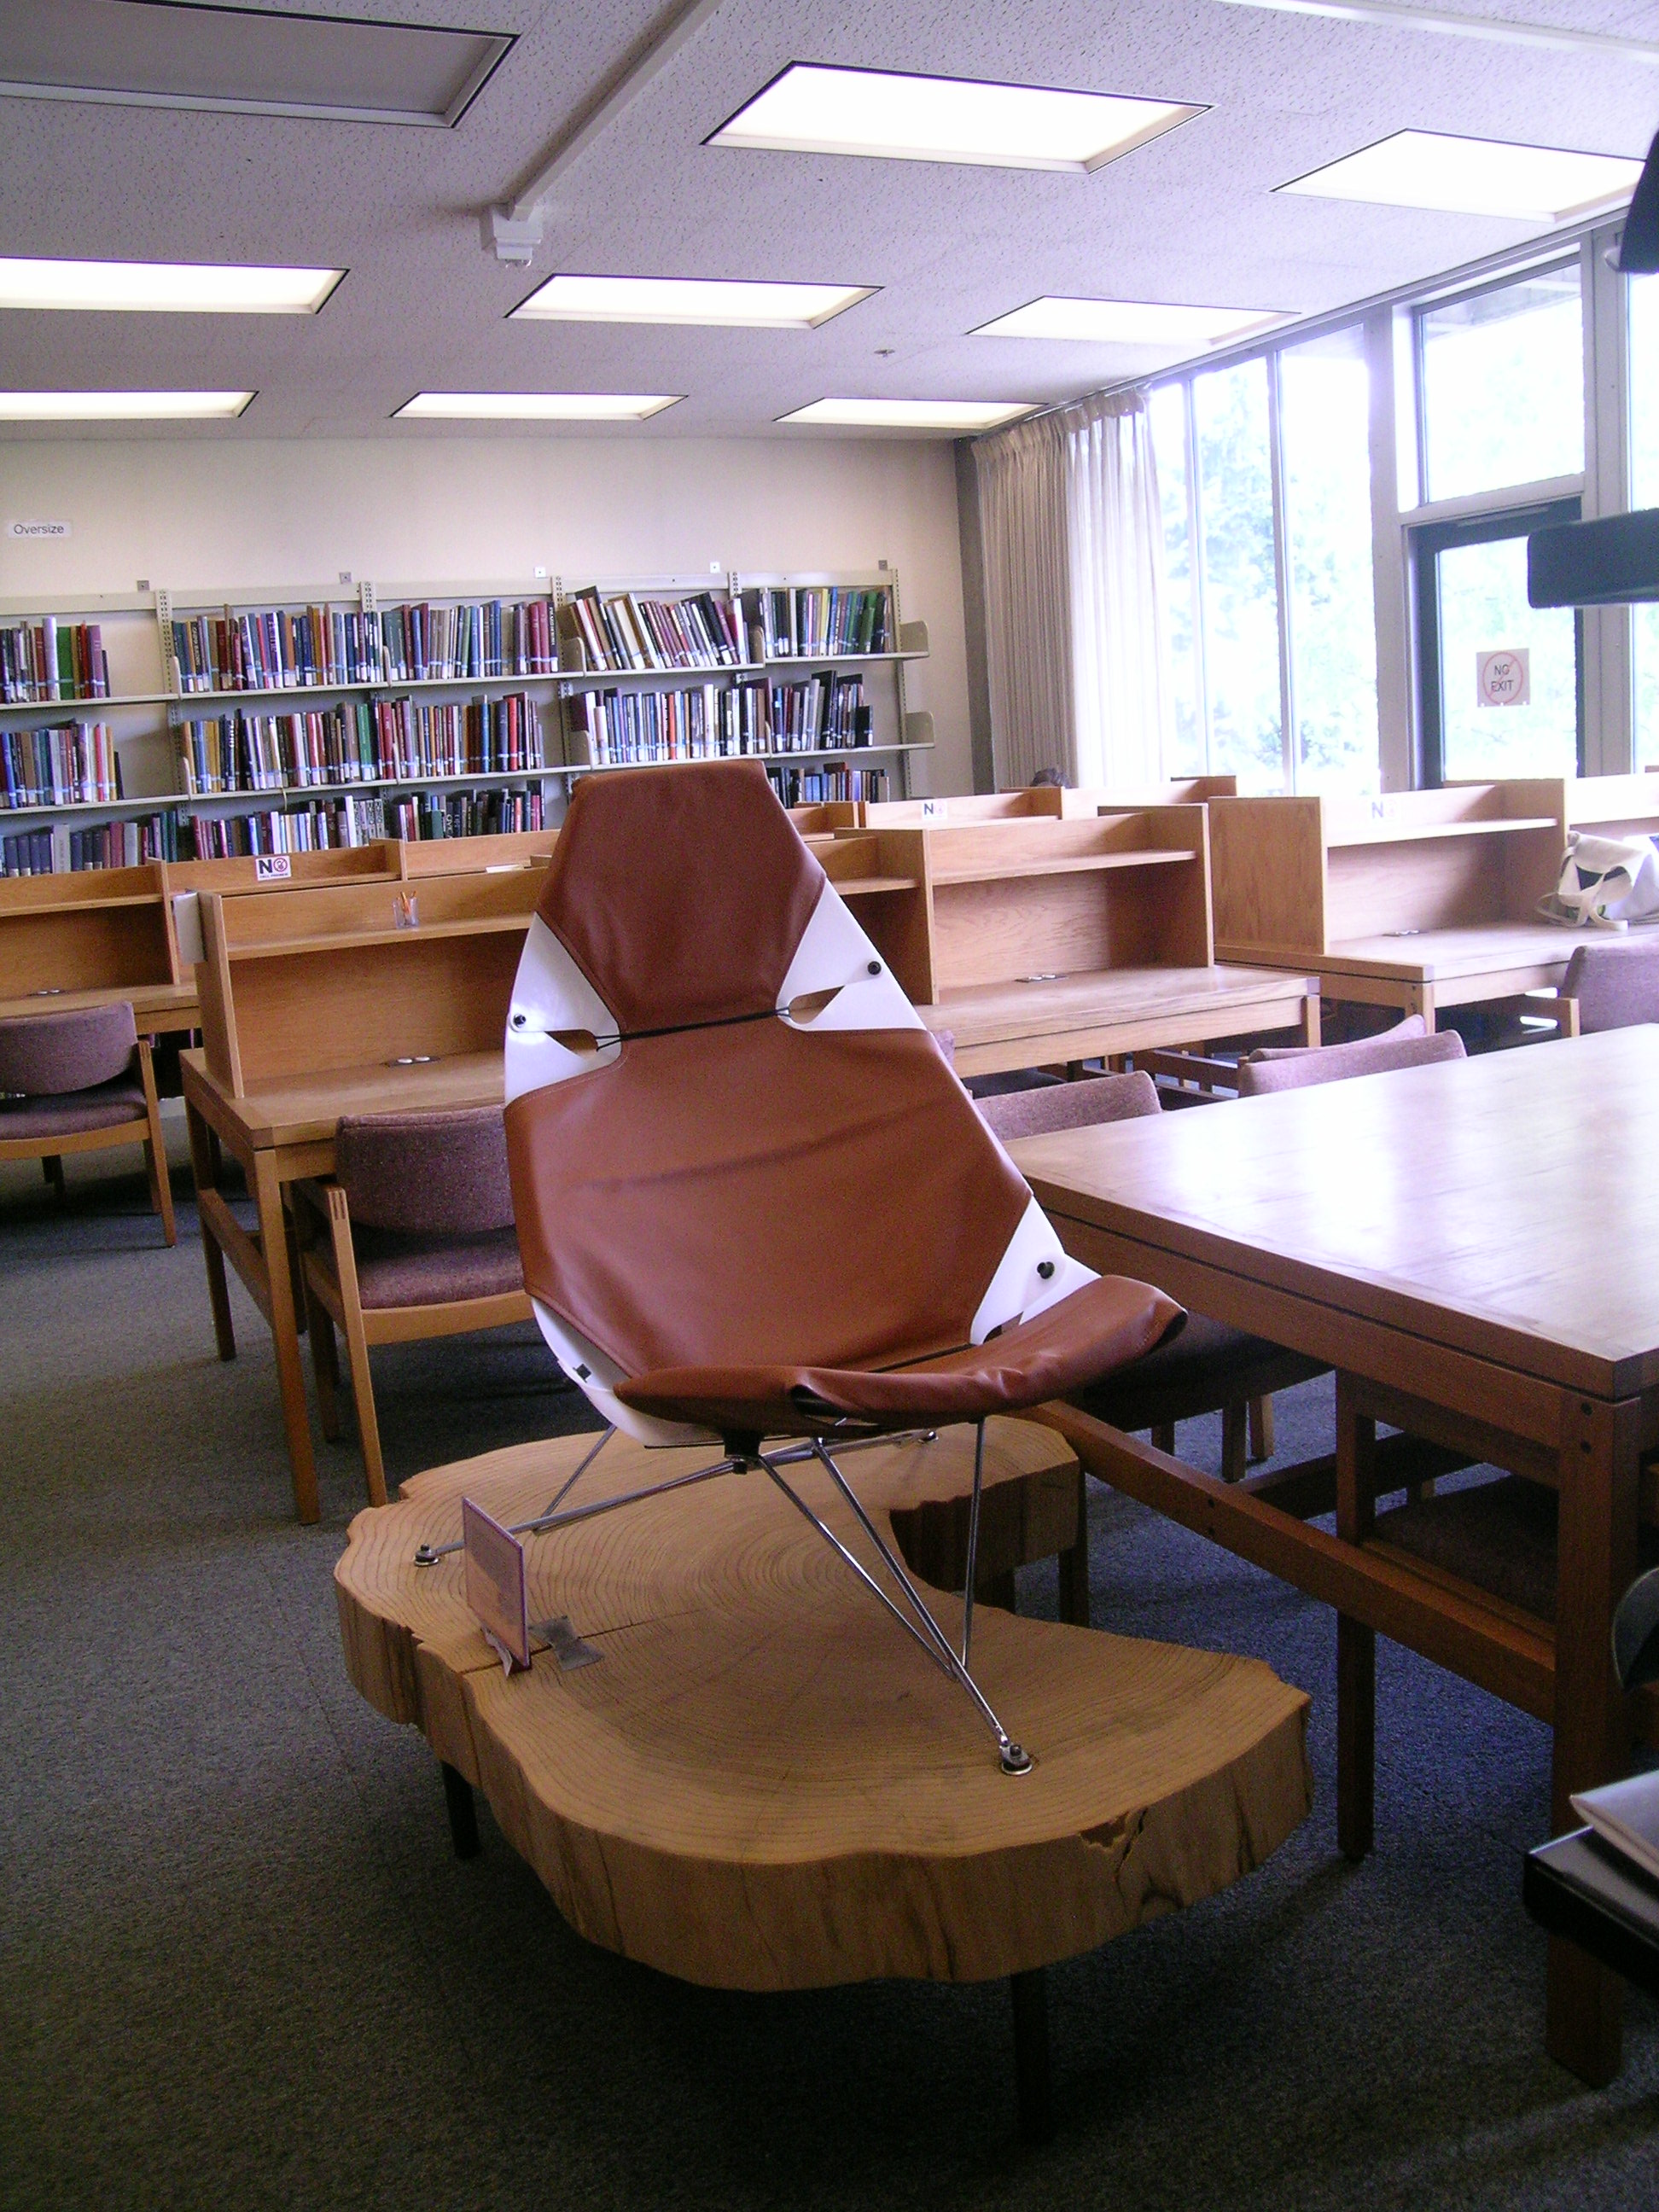 Bikini chair in the BE library designed by Wendell Lovett — UW